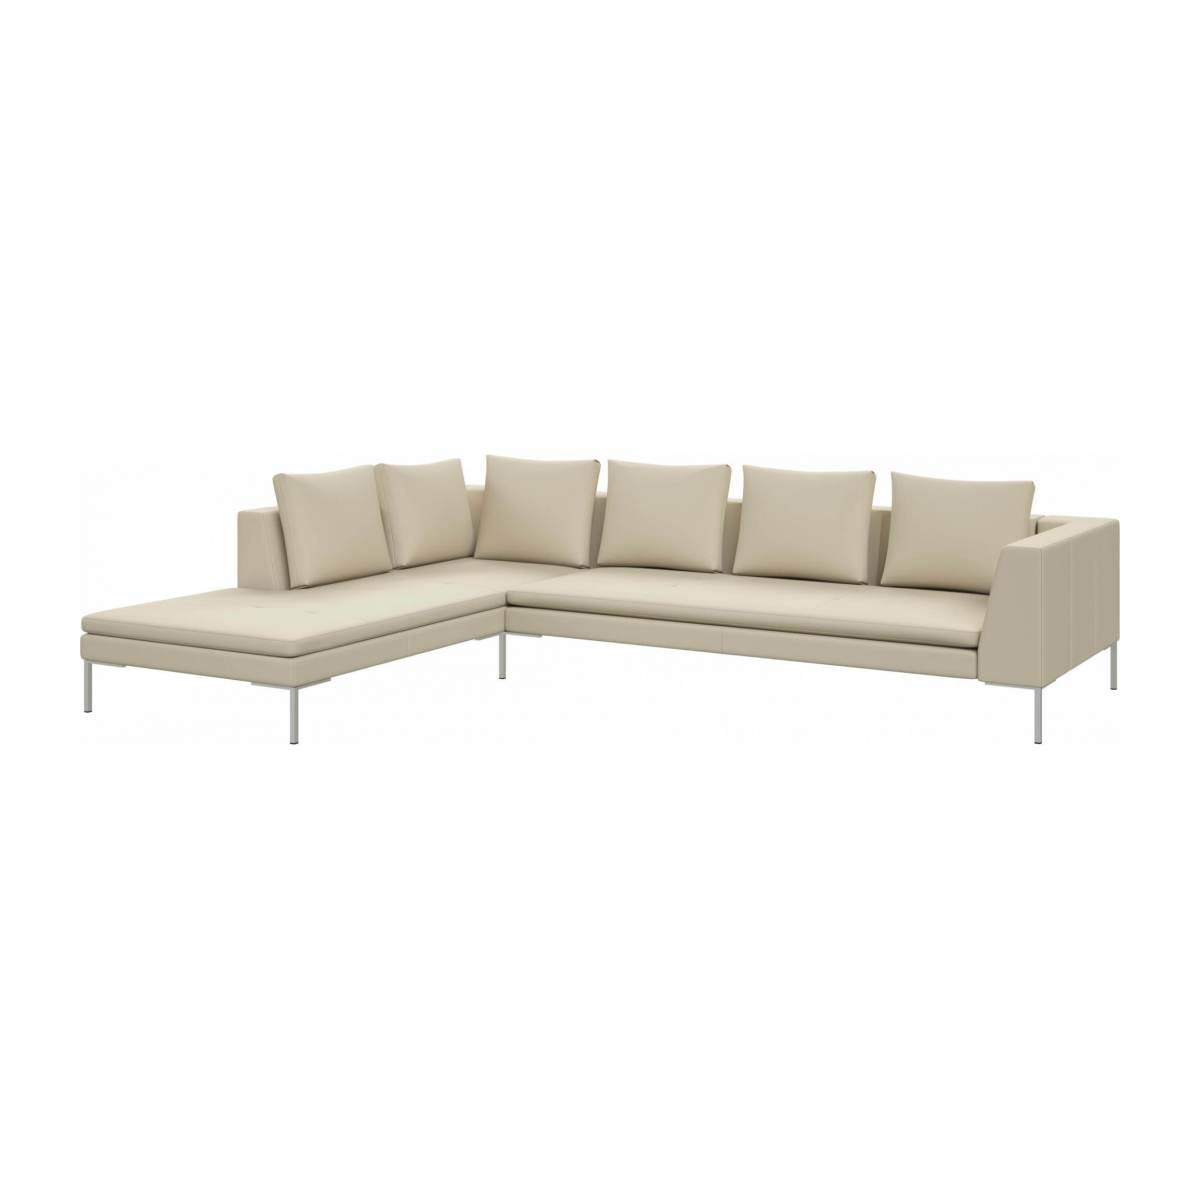 3 seater sofa with chaise longue on the left in Savoy semi-aniline leather, off white  n°2